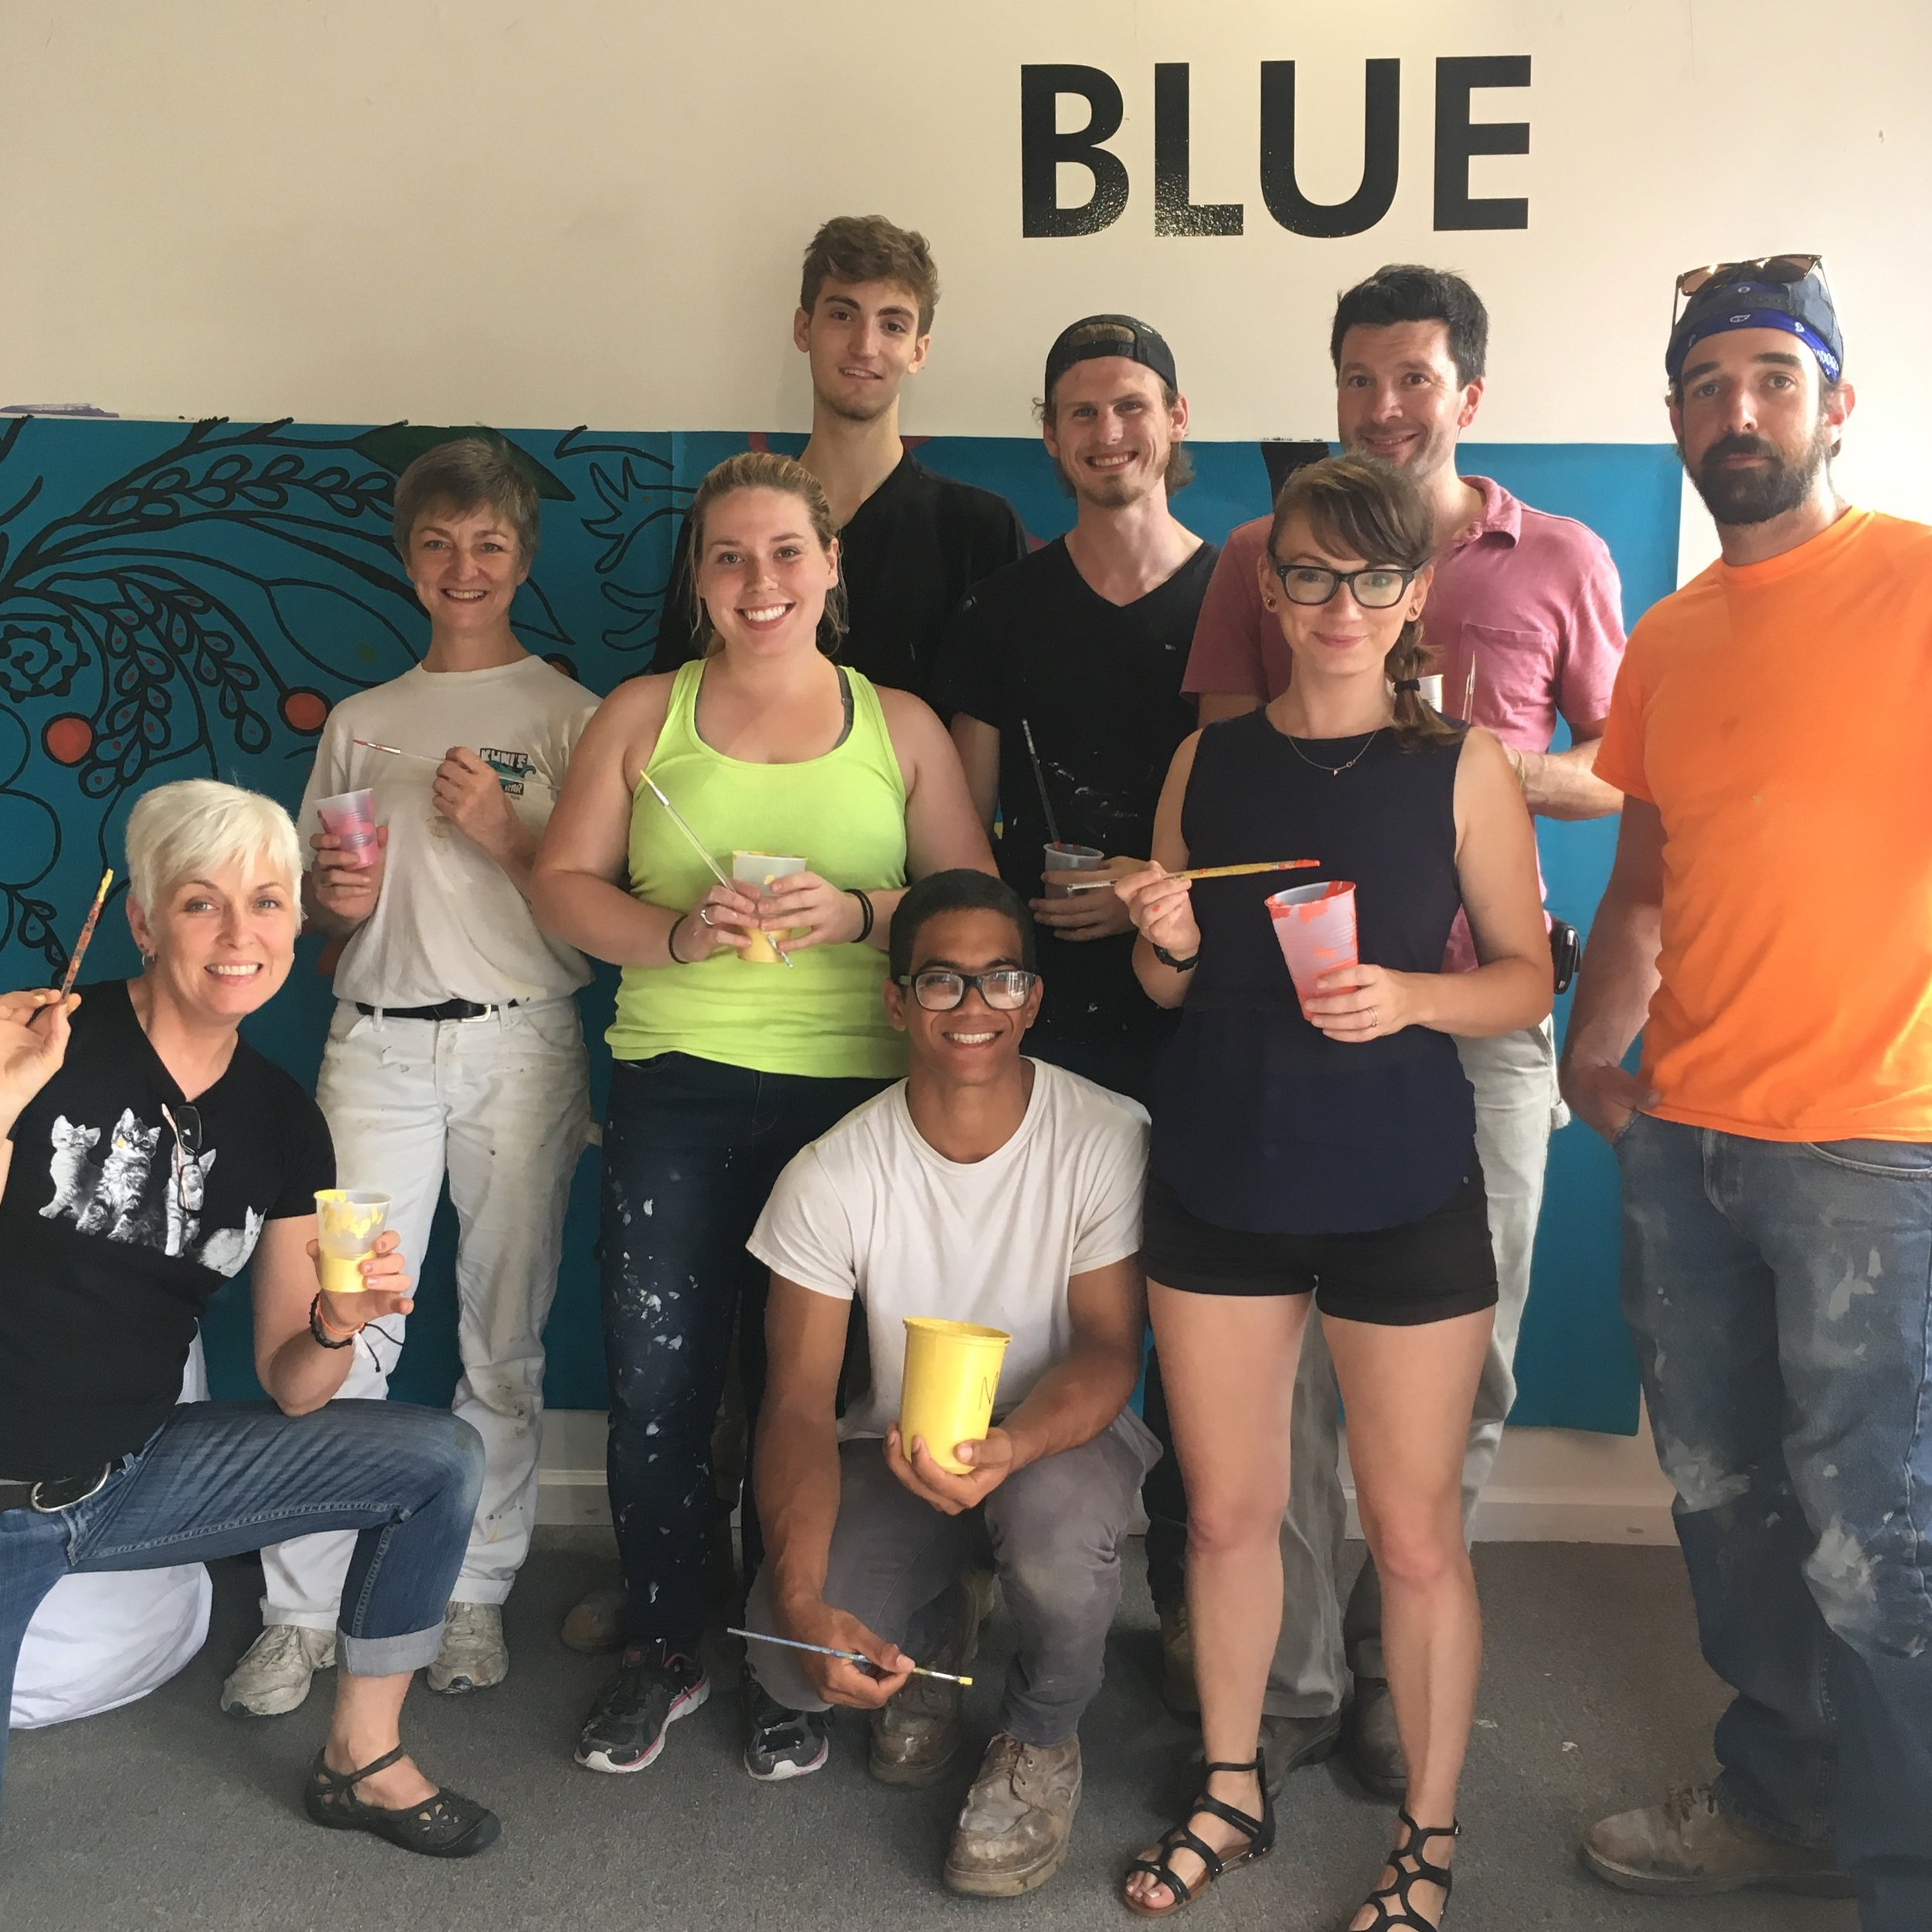 buffalove painting party for the mural - Aug 2017